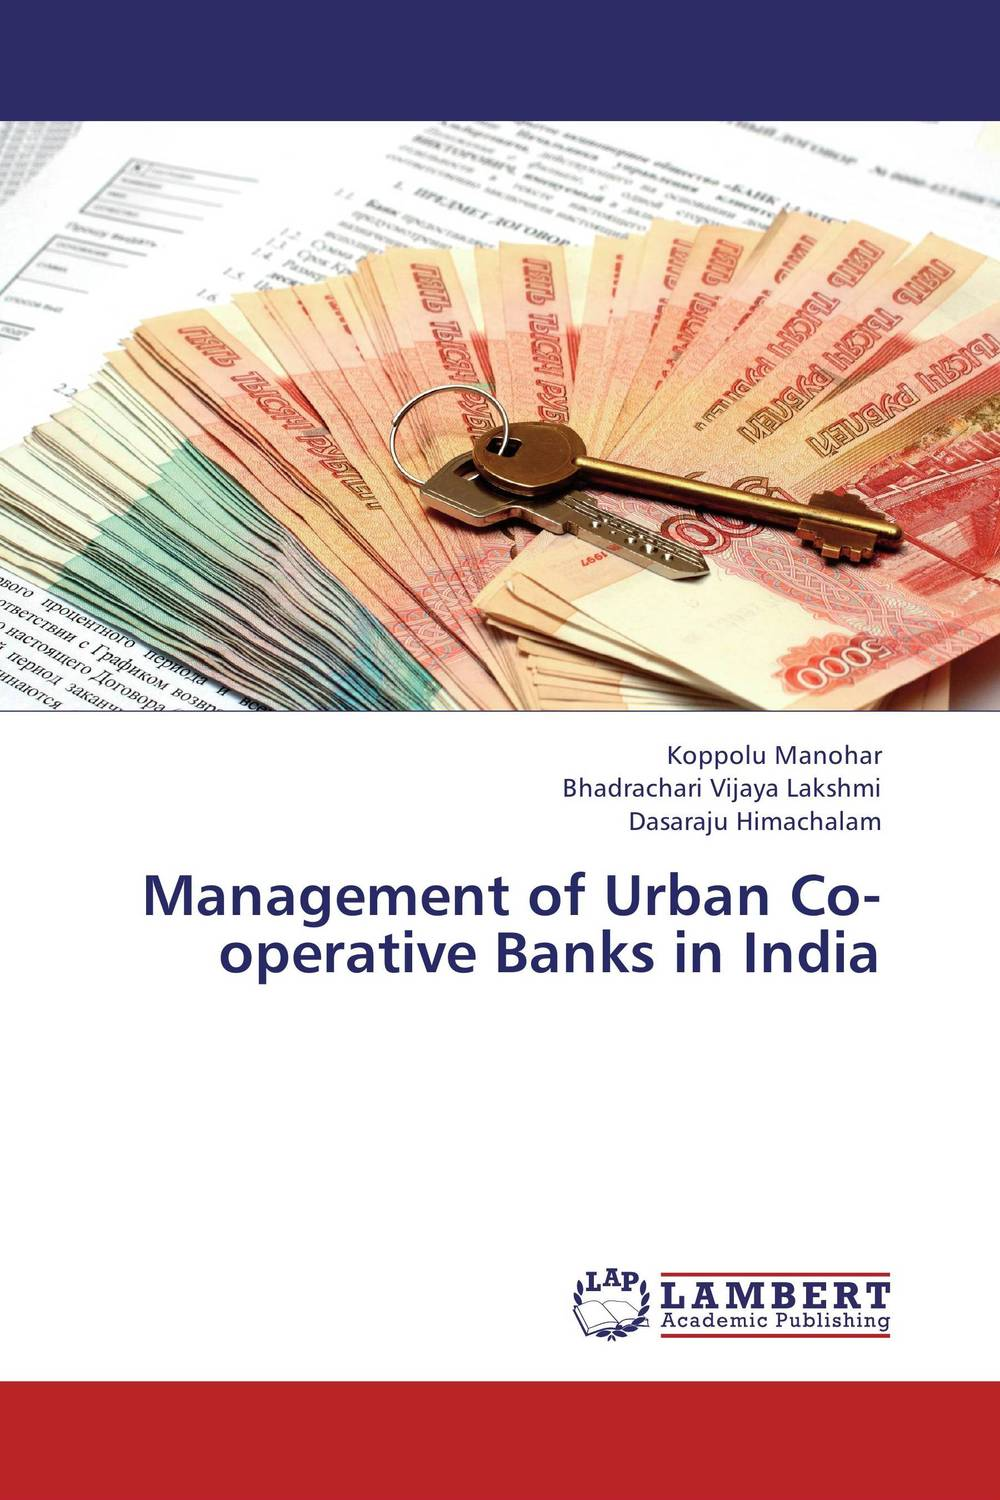 Management of Urban Co-operative Banks in India subramanyam thupalle credit risk efficiency in indian commercial banking